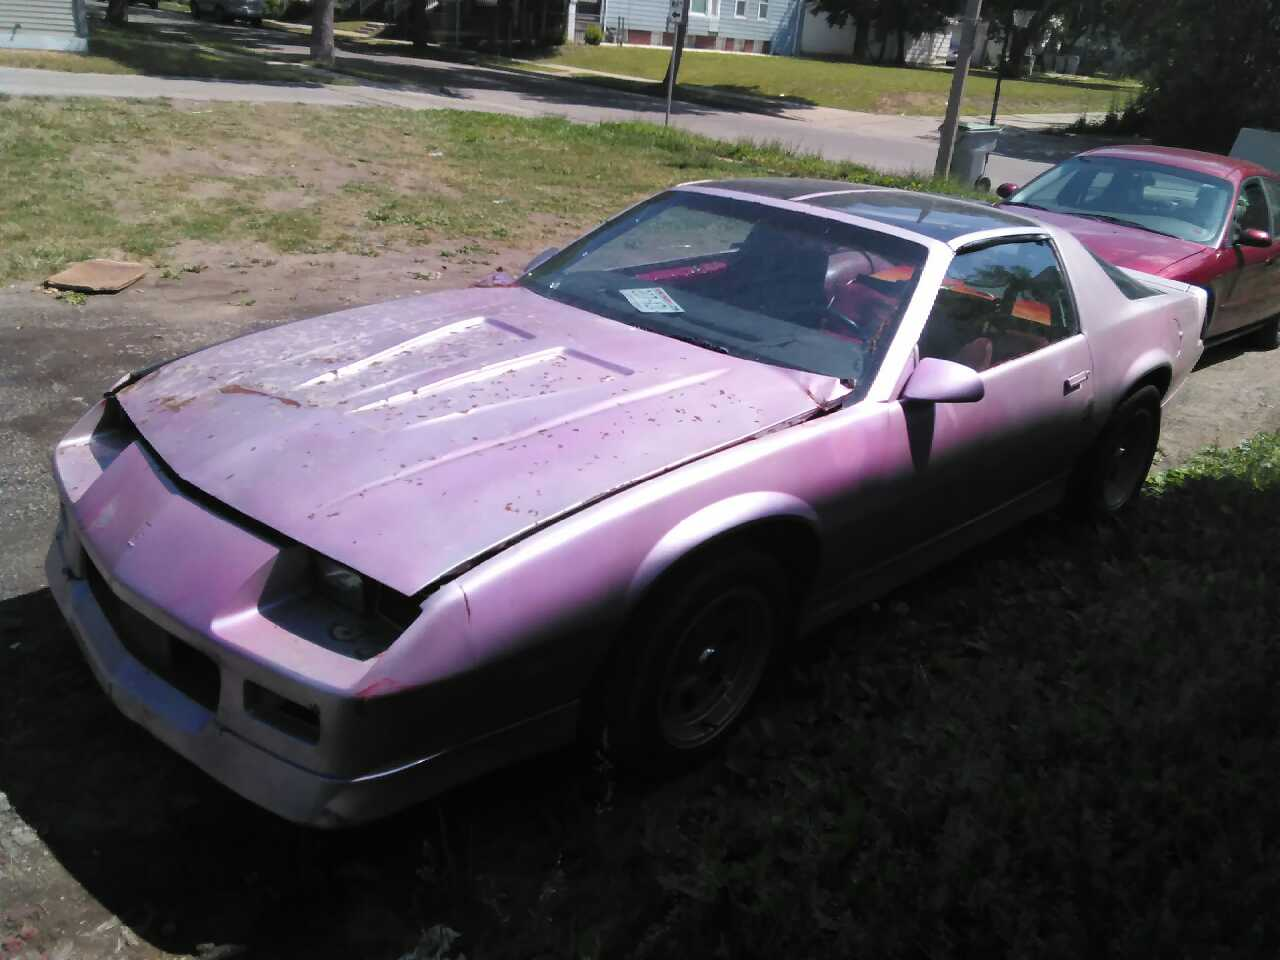 letgo 1986 t top chevy camaro in glendale wi. Black Bedroom Furniture Sets. Home Design Ideas